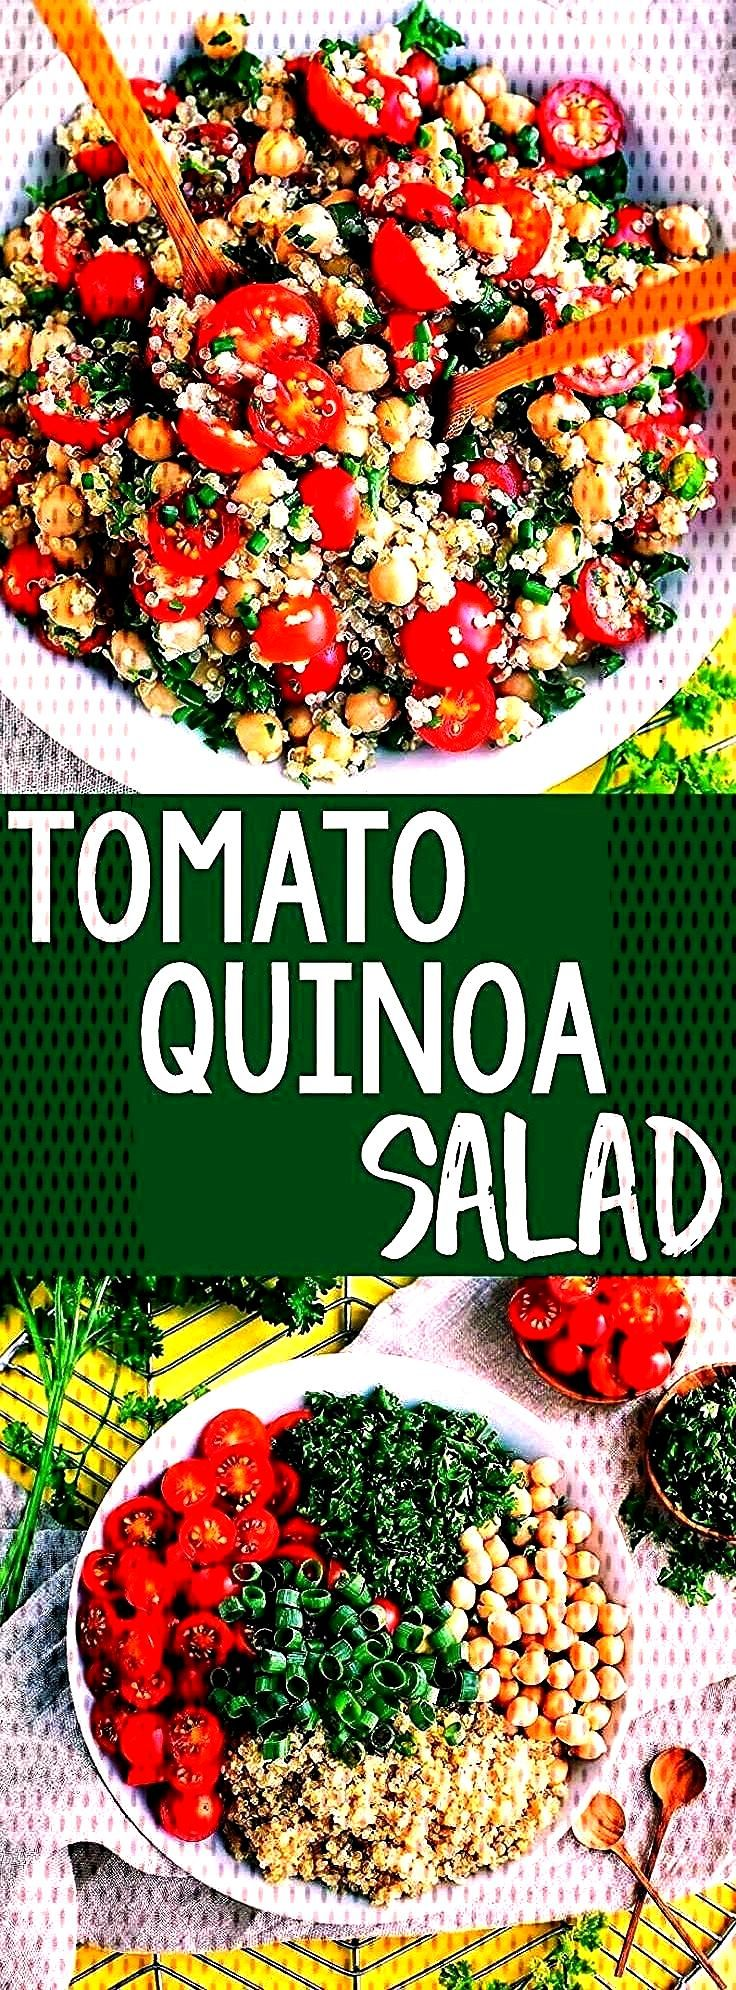 time to add another tasty quinoa recipe to our meal prep game! This Tomato Quinoa Salad is fast, fl